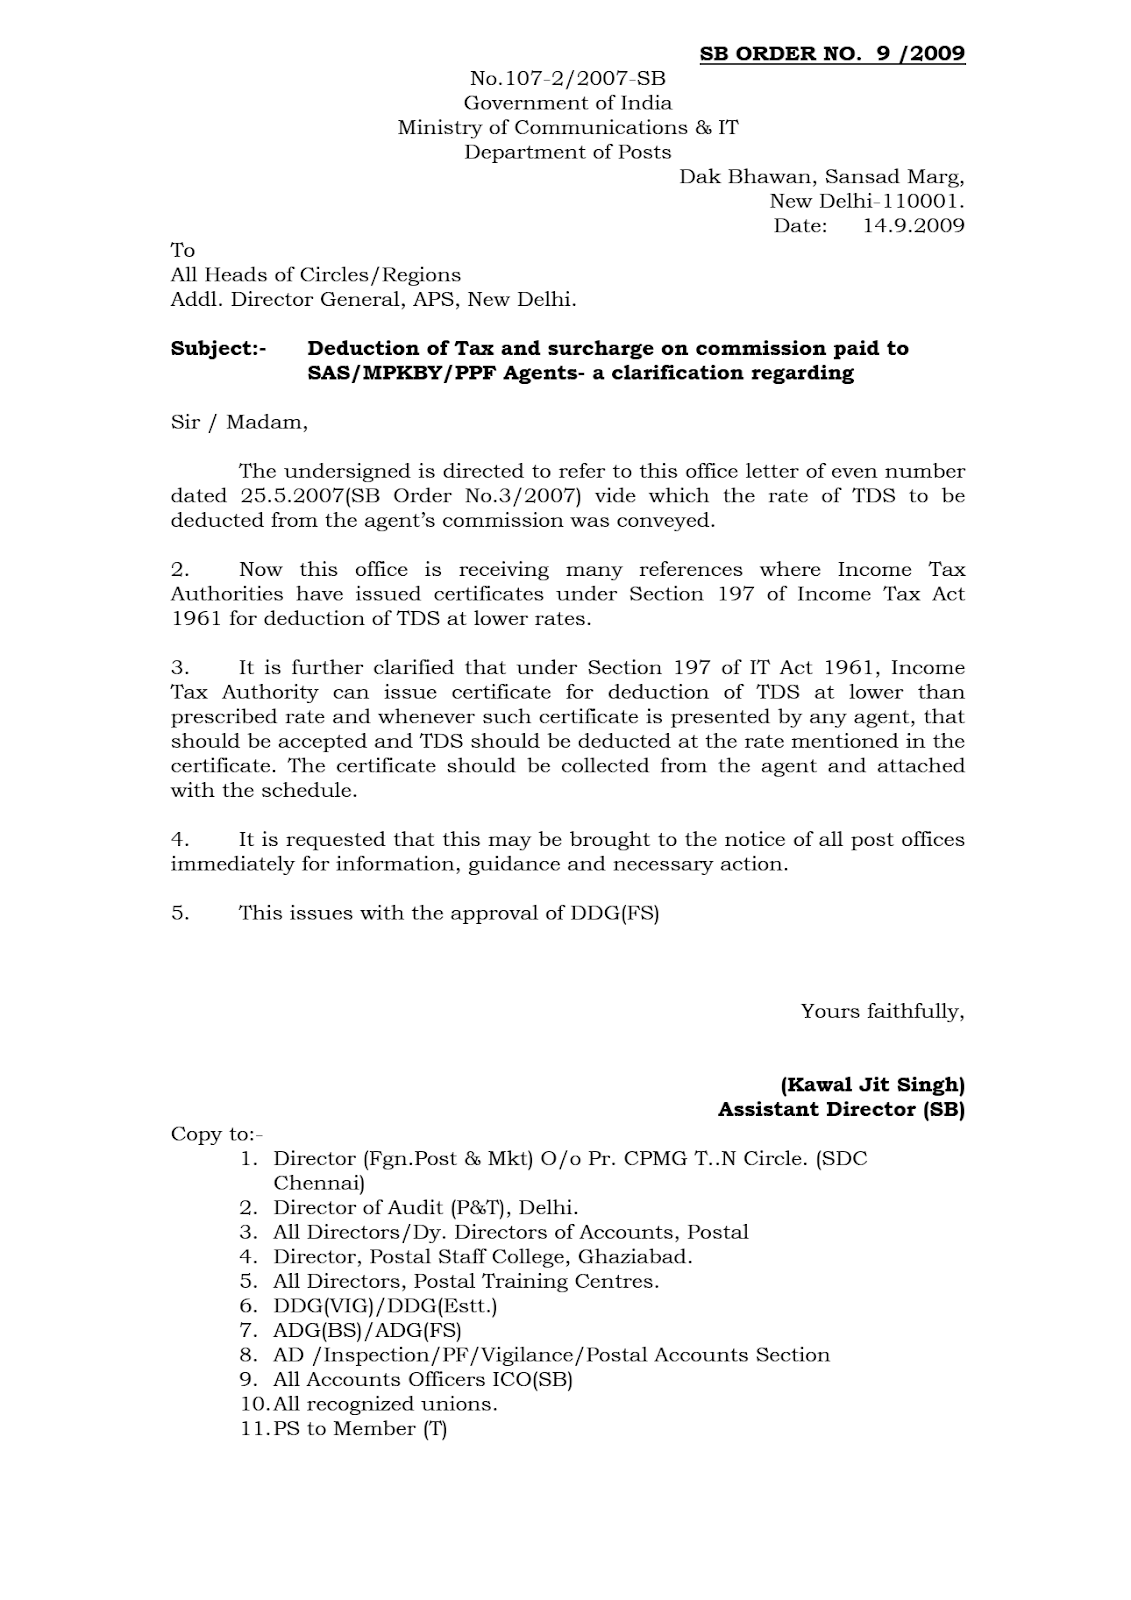 Dop Orders Deduction Of Tax And Surcharge On Commission Paid To